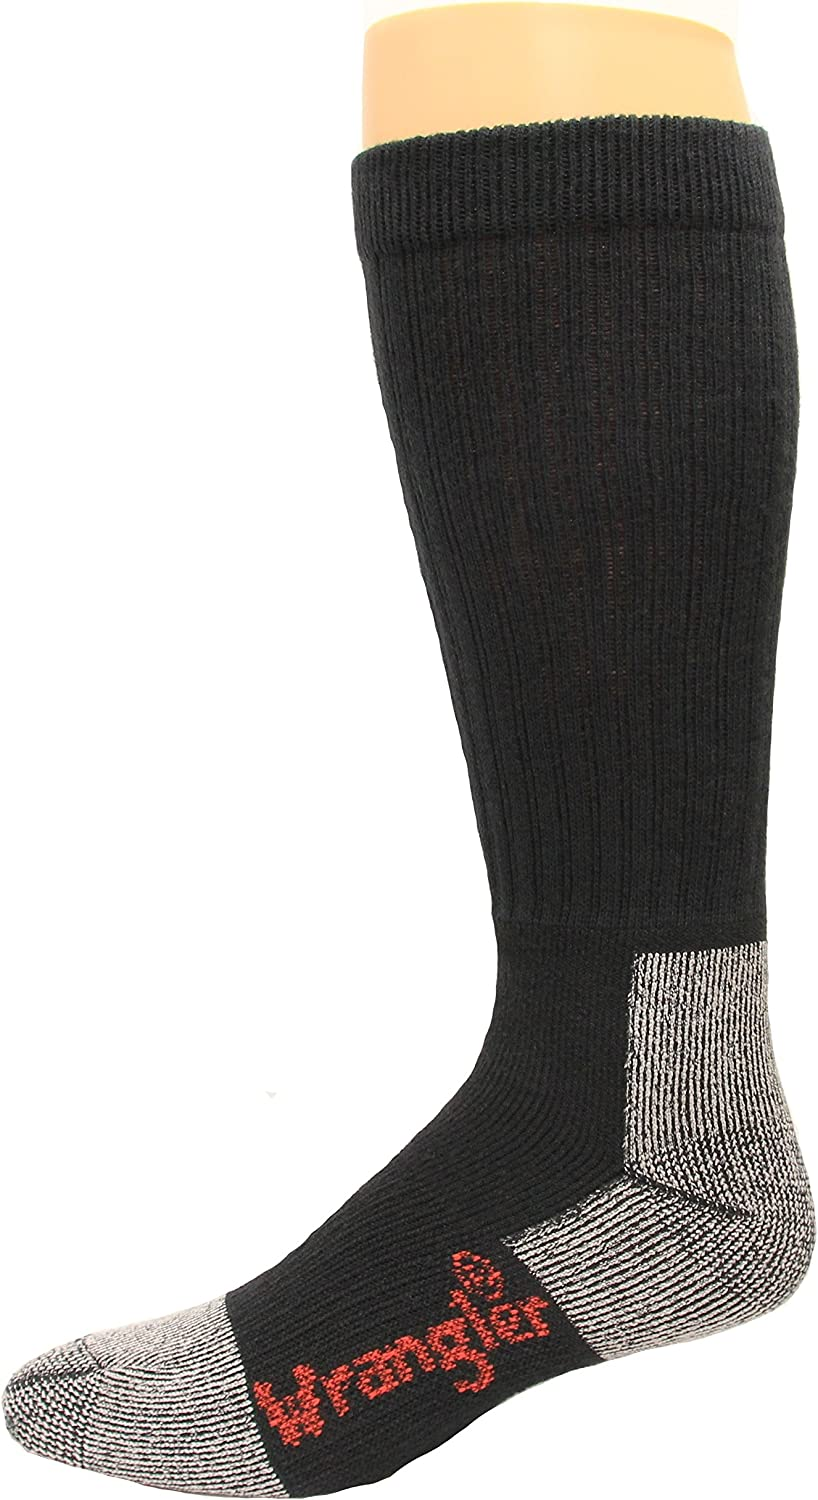 Riggs Cotton Work Boot Socks Over The Calf, Black, Lrg (M 9-13), 2 Pair